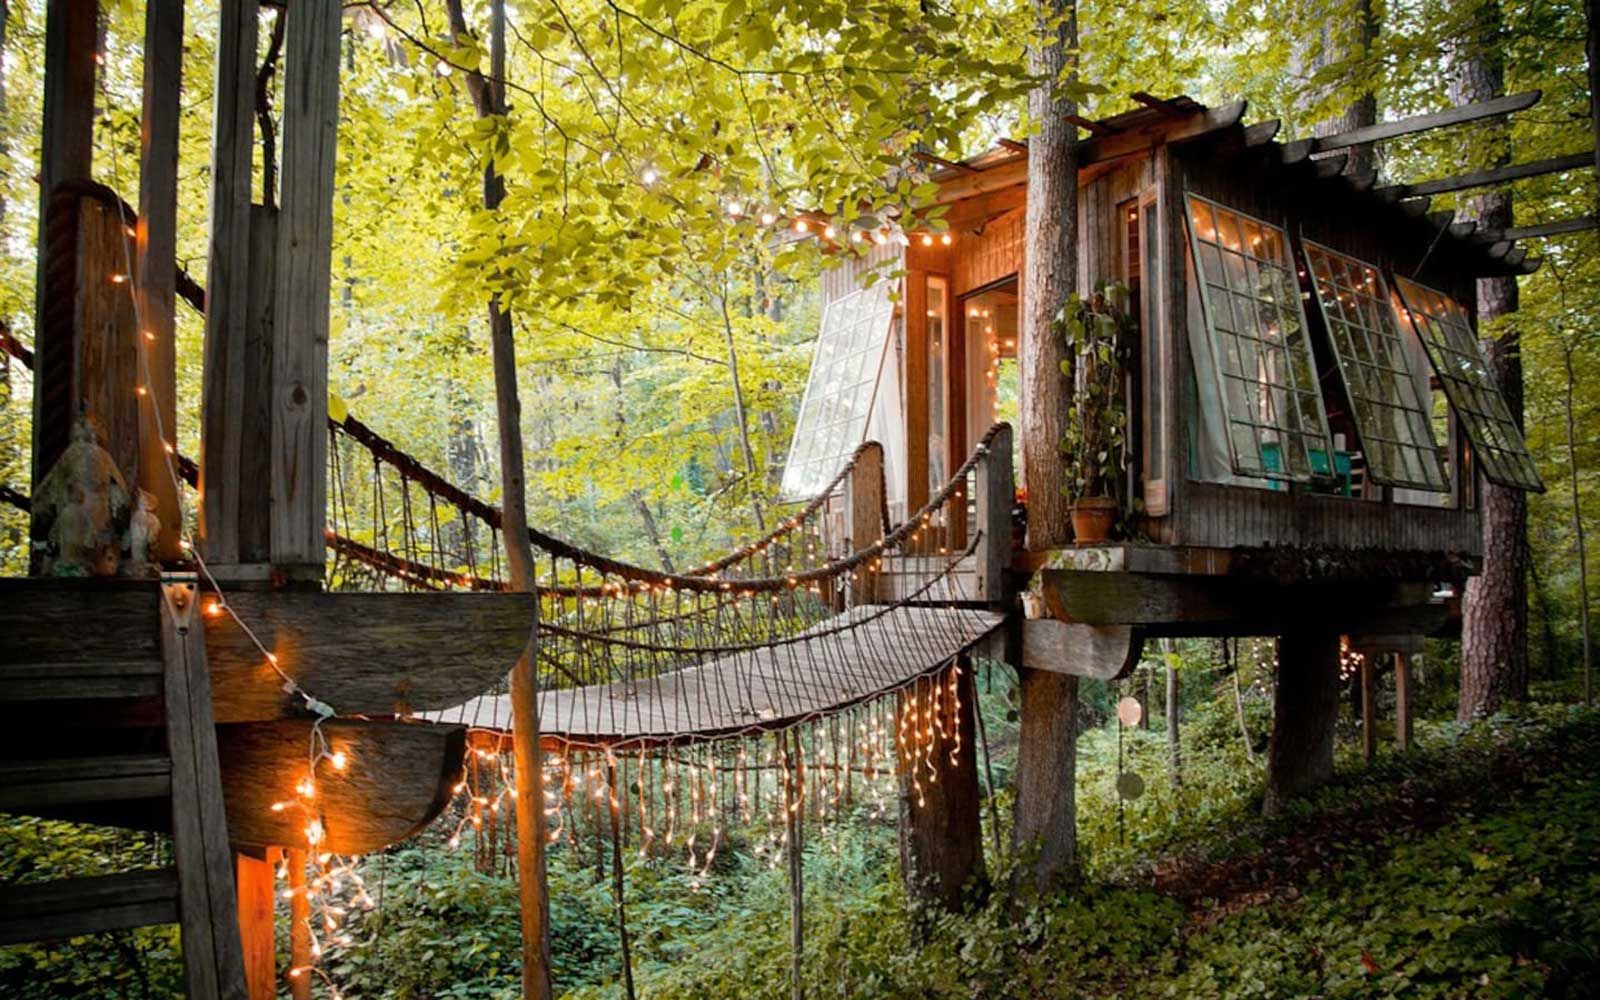 This Crazy Gorgeous Treehouse Is the Most Popular Listing on Airbnb